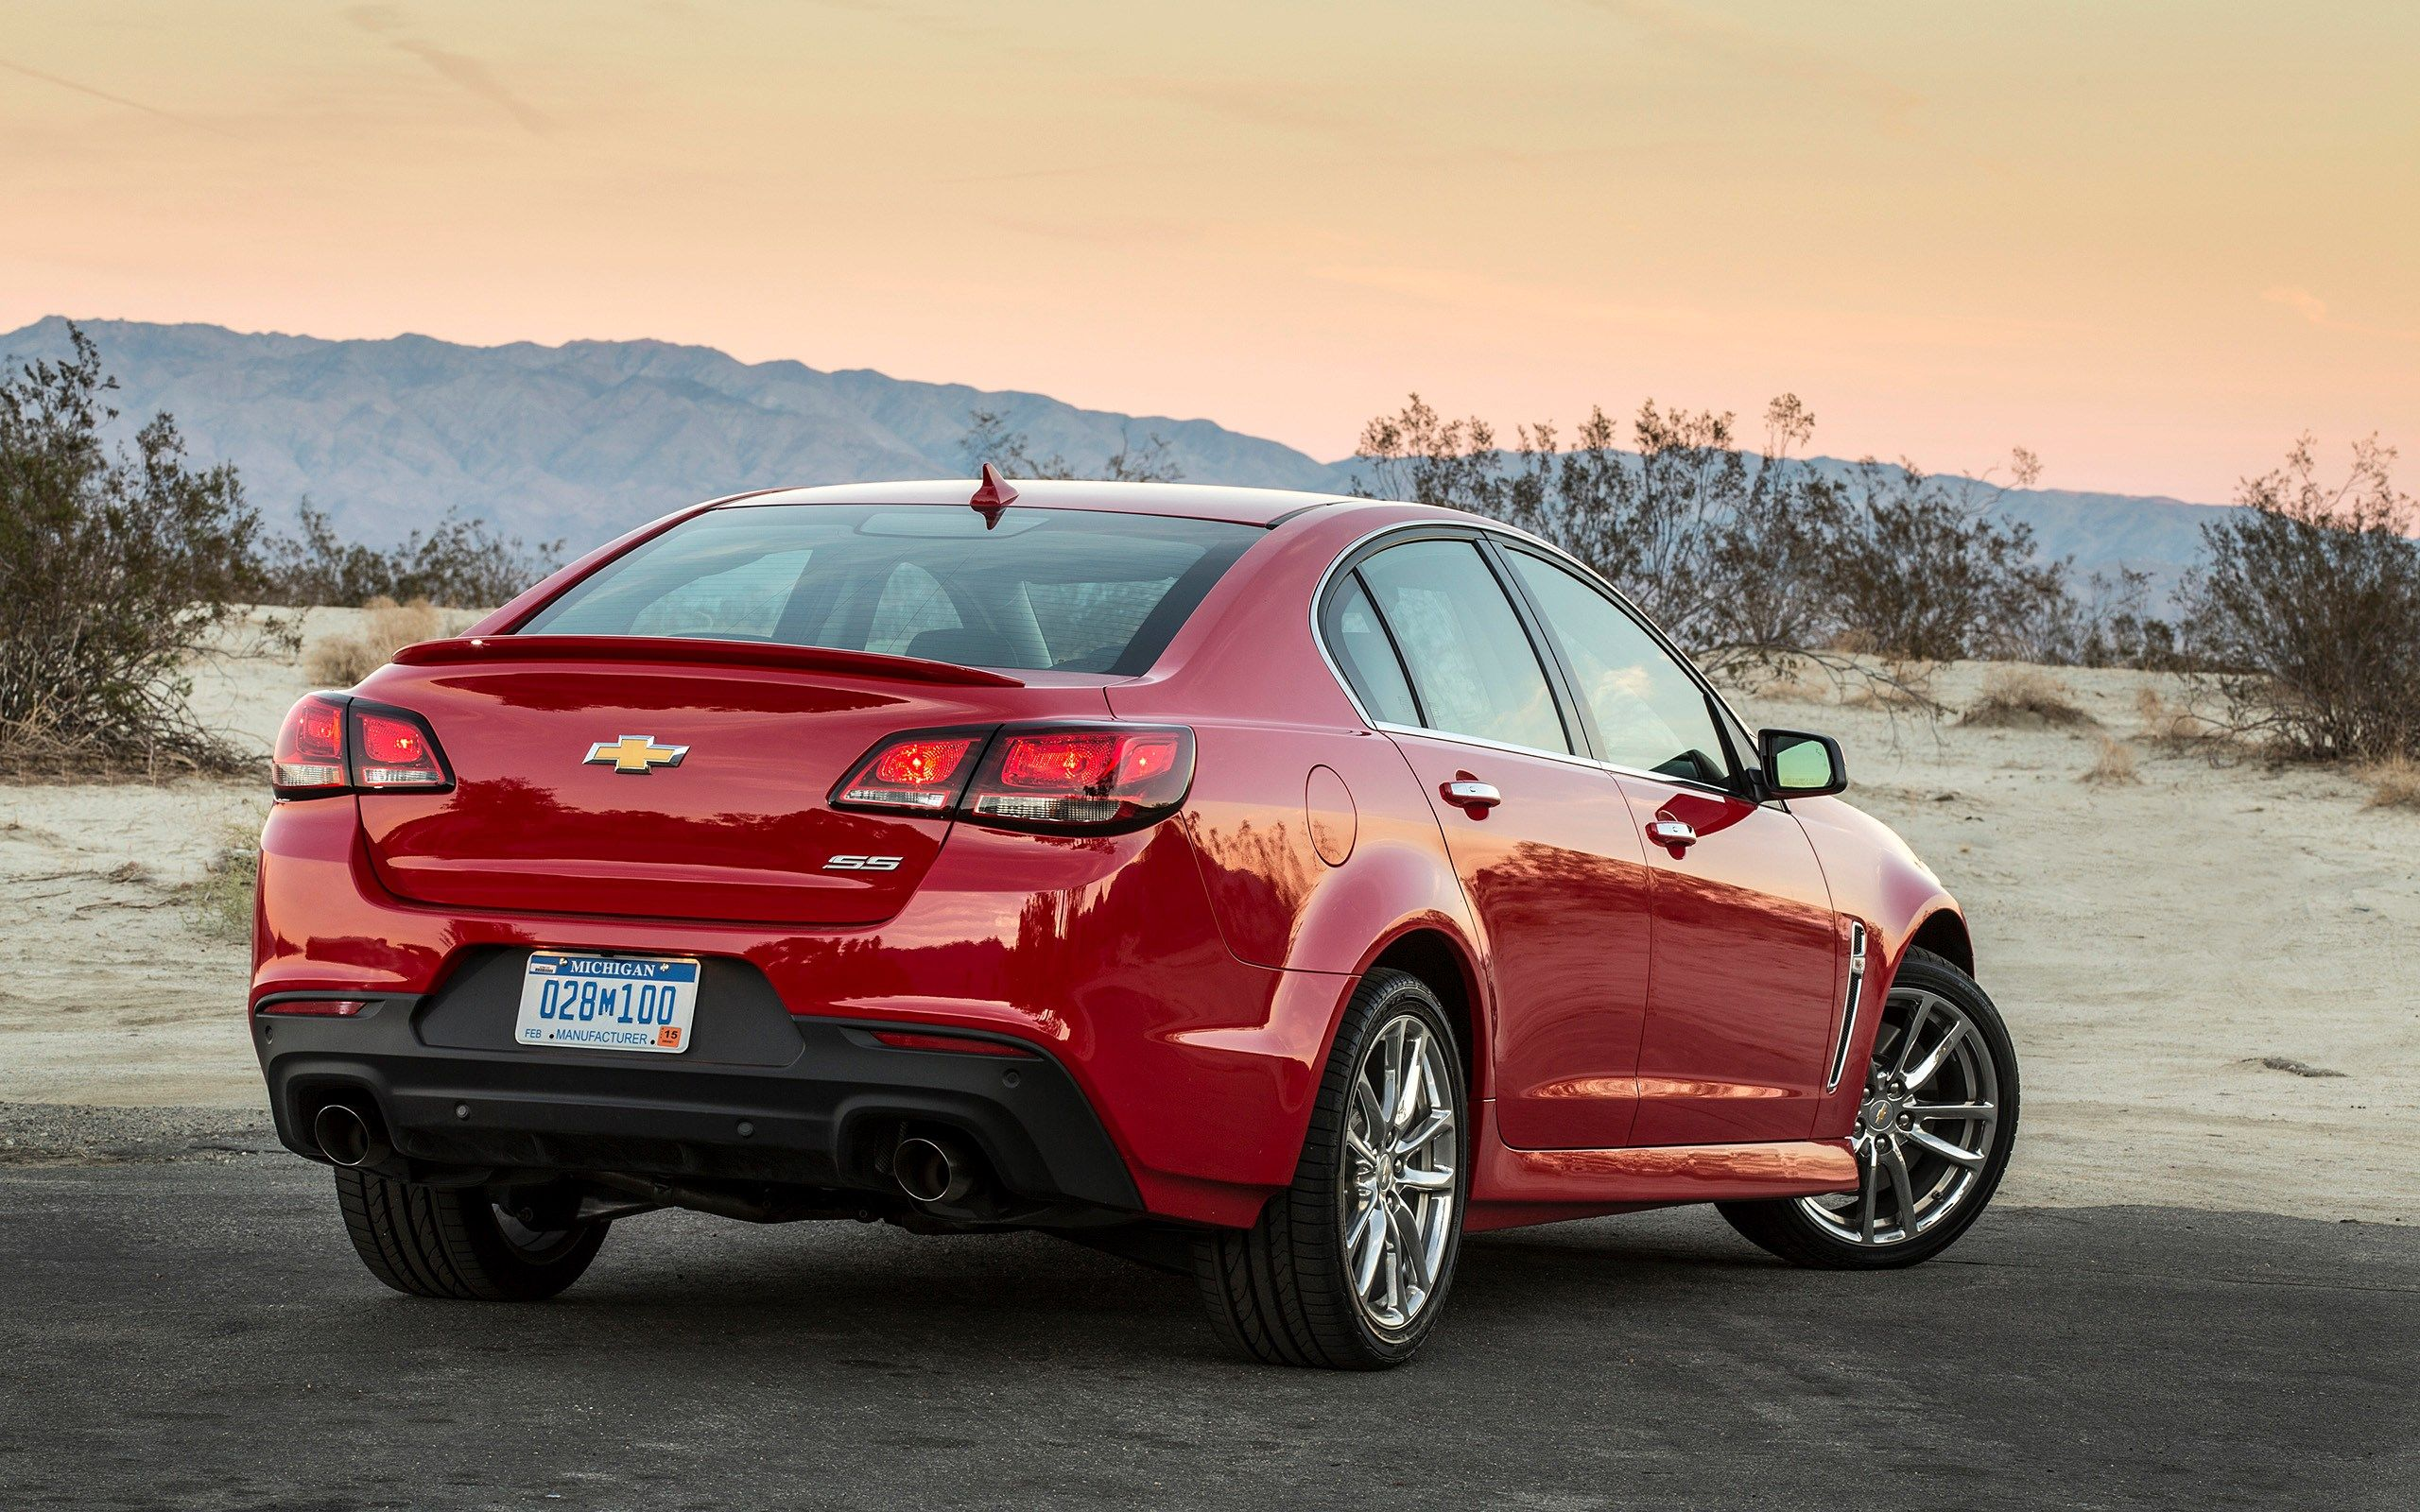 2017 03 11 chevrolet ss pictures to download 1937480